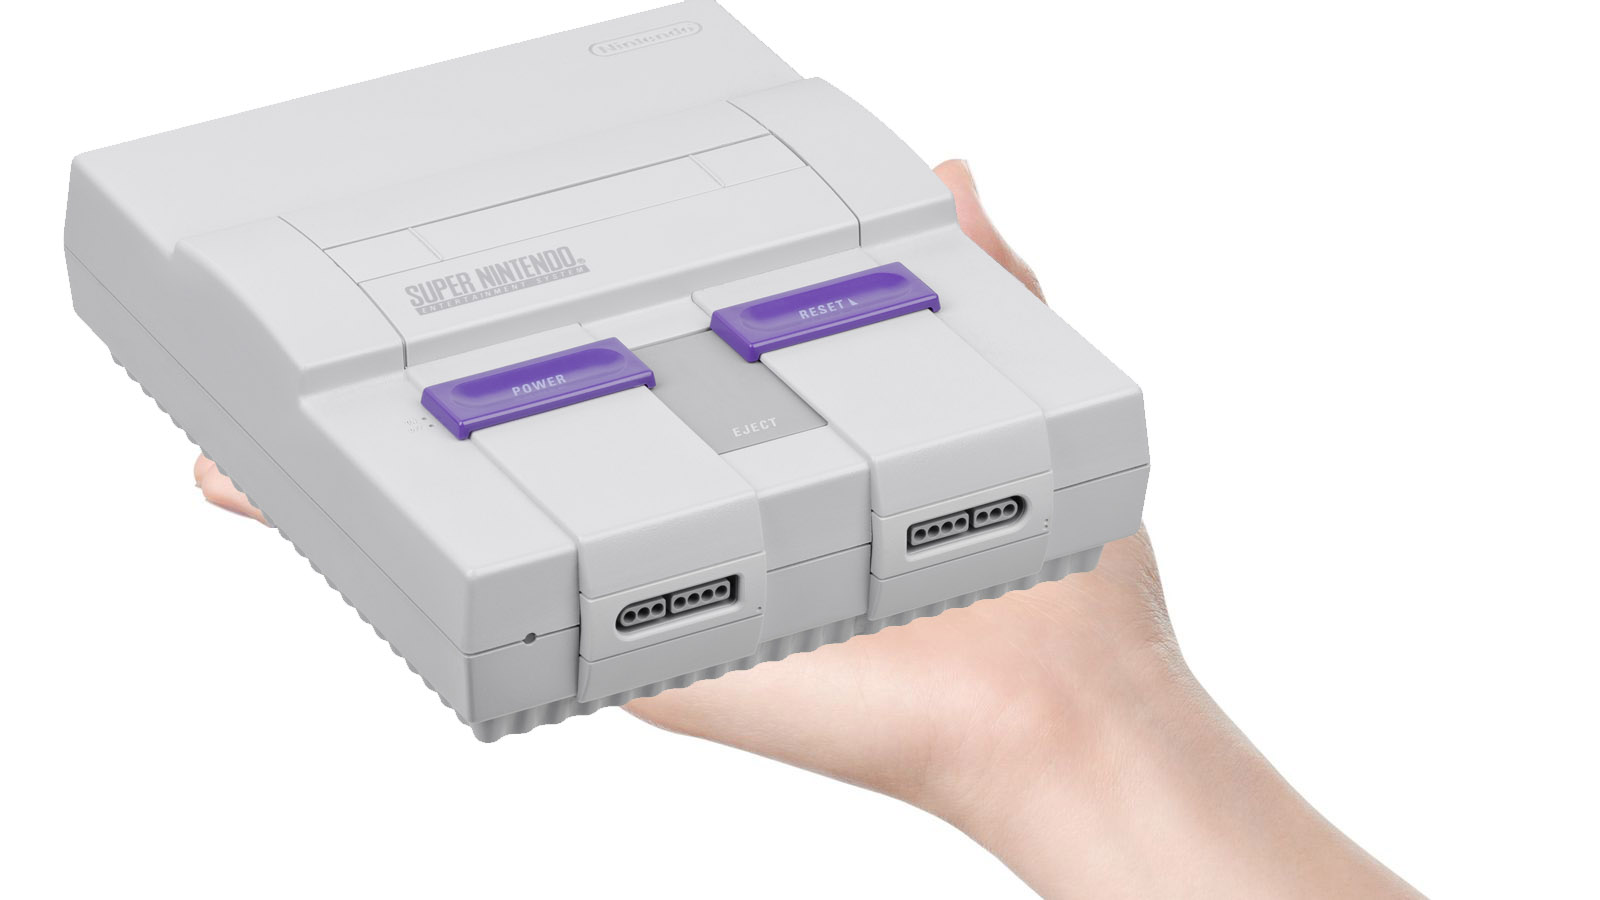 Nintendo Promised To Bring More Stock To Retail, But Ultimately Decided To